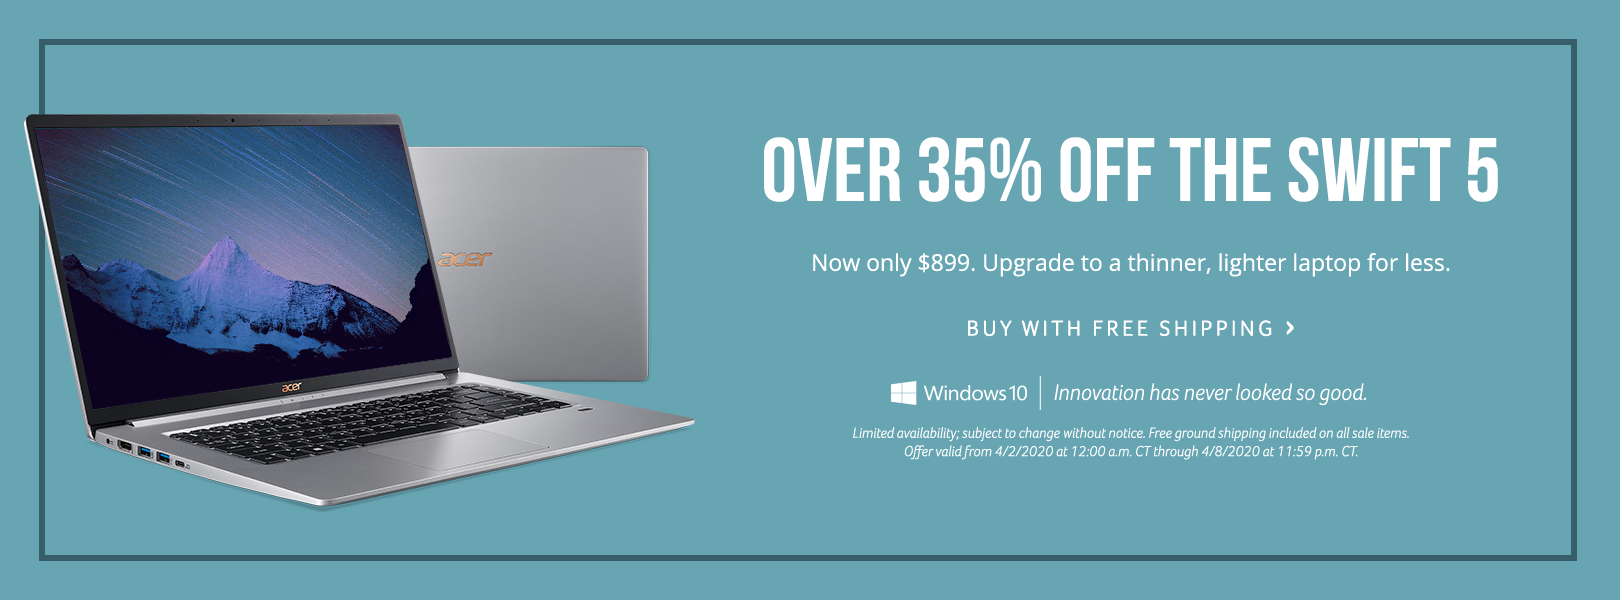 Save over 35% on the Swift 5